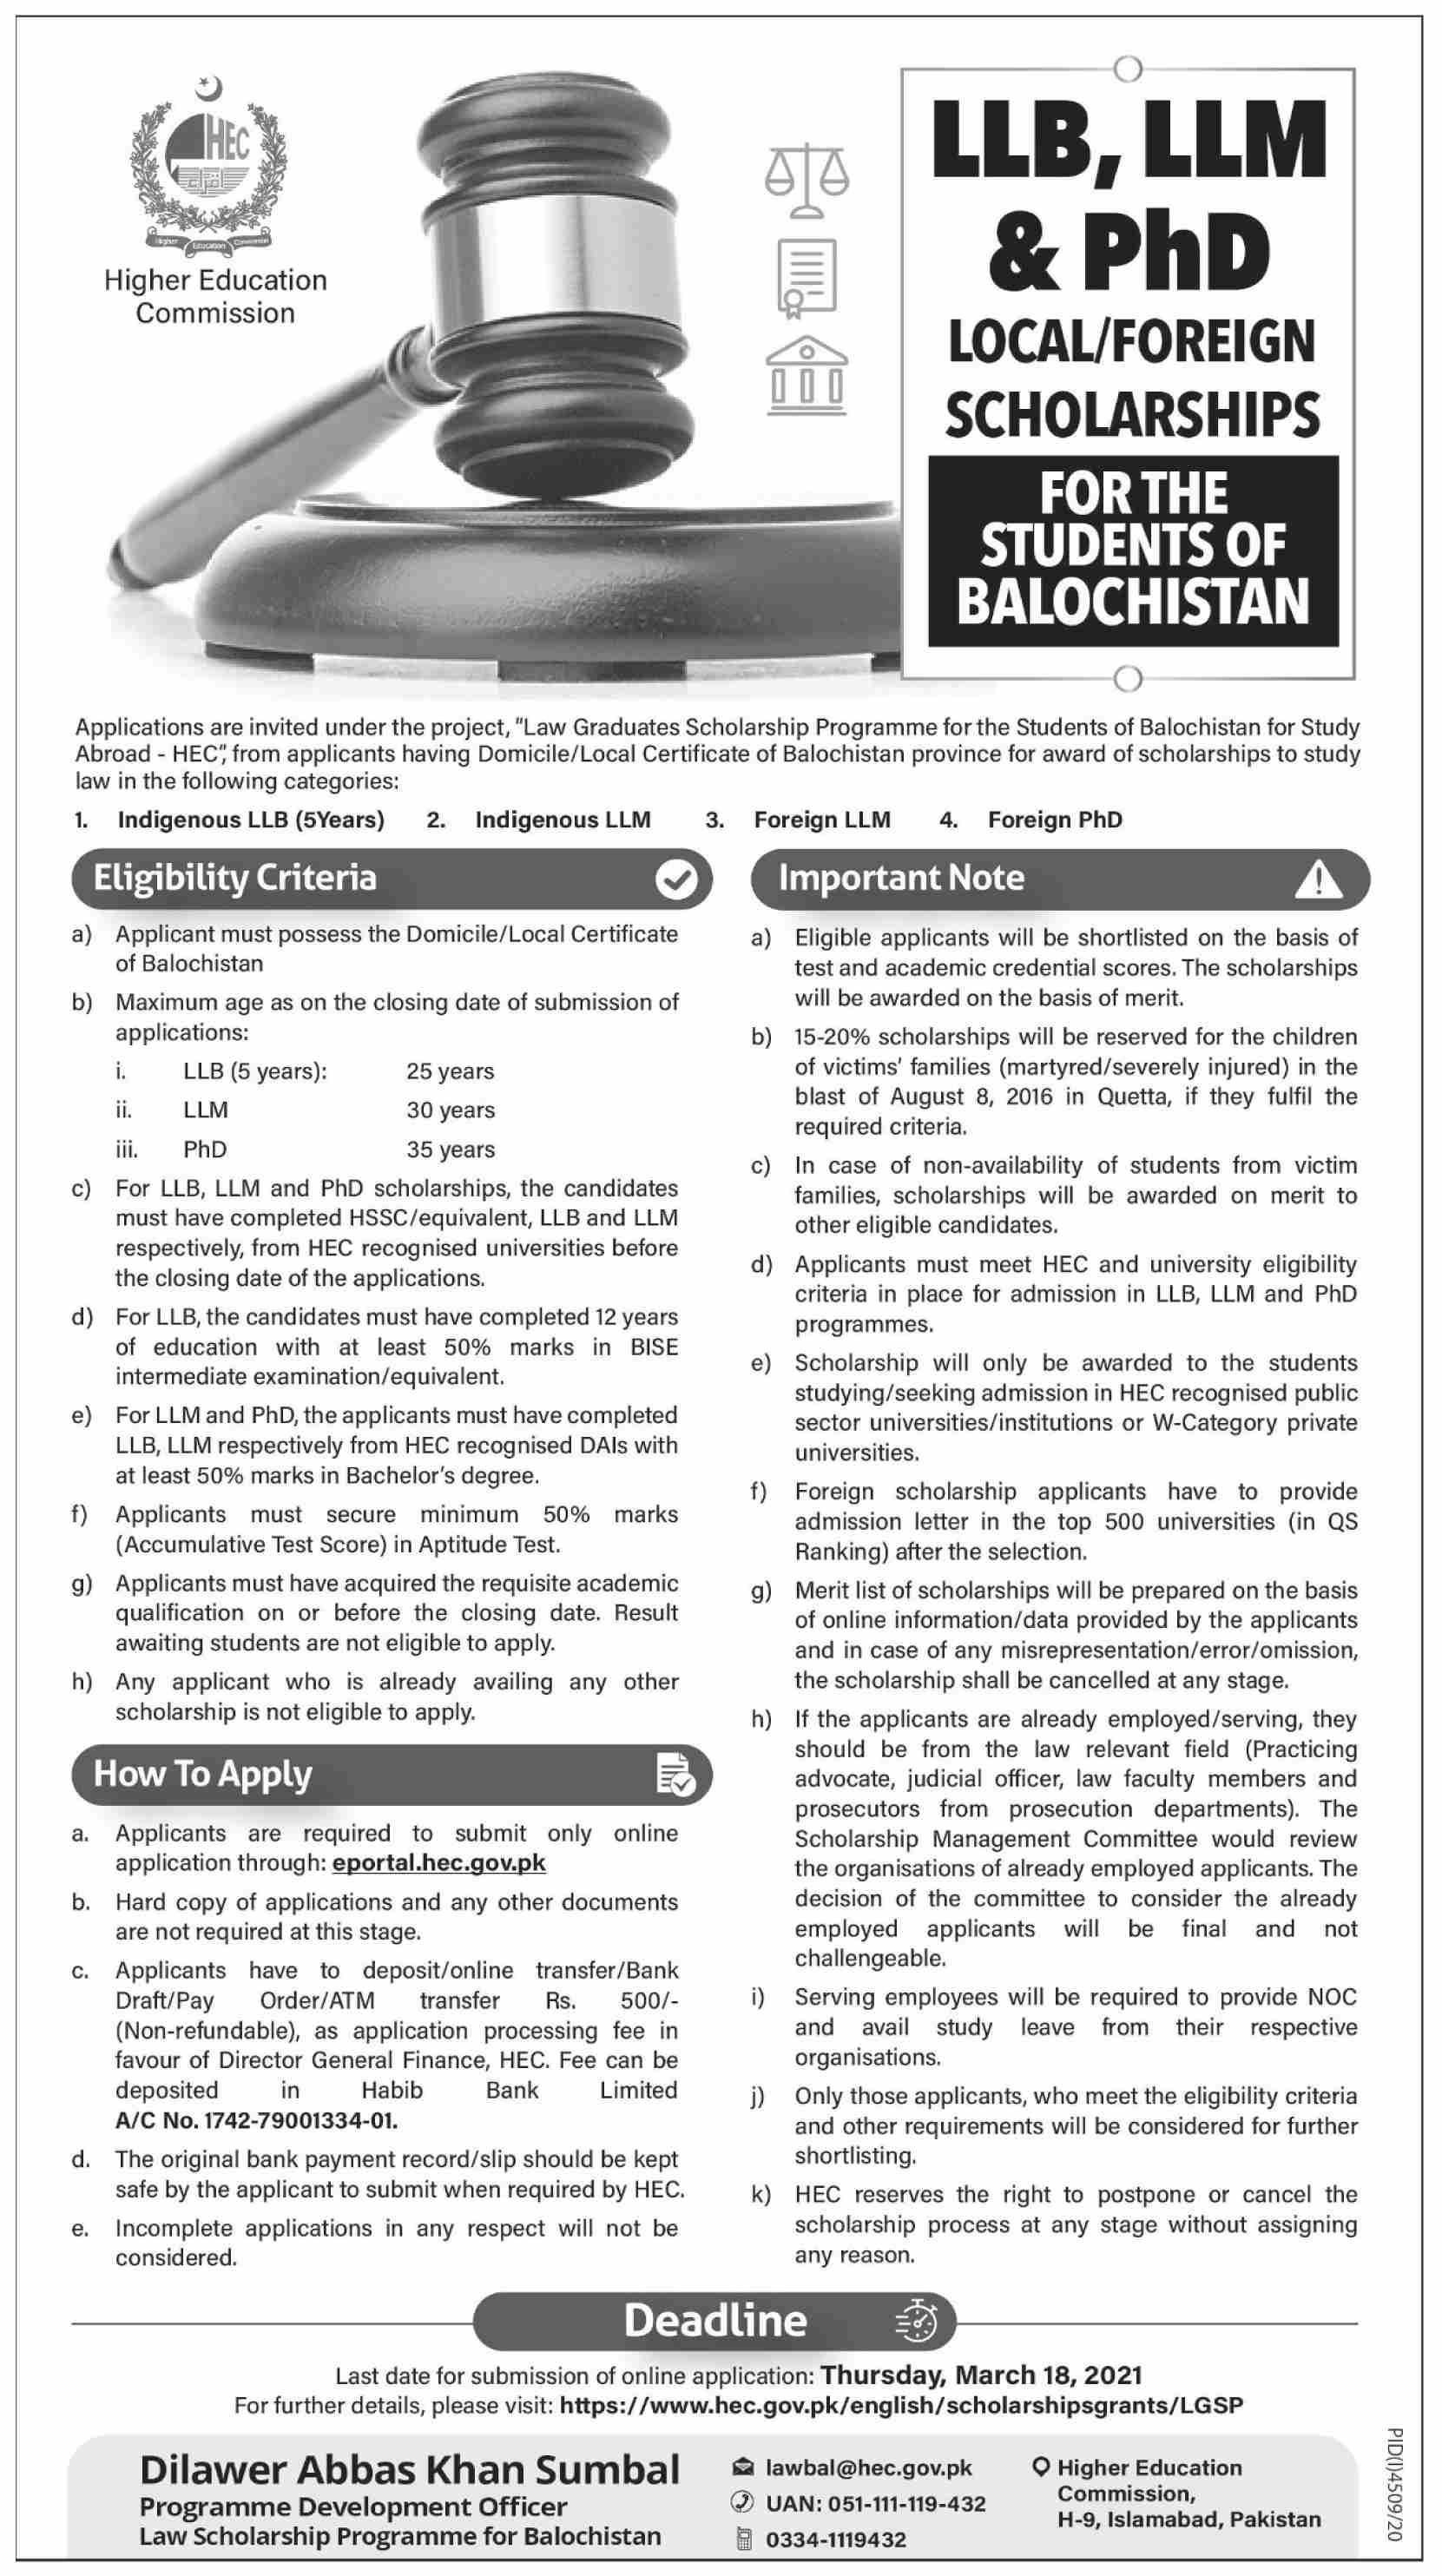 HEC LLB and PhD Scholarships 2021 for Balochistan Students